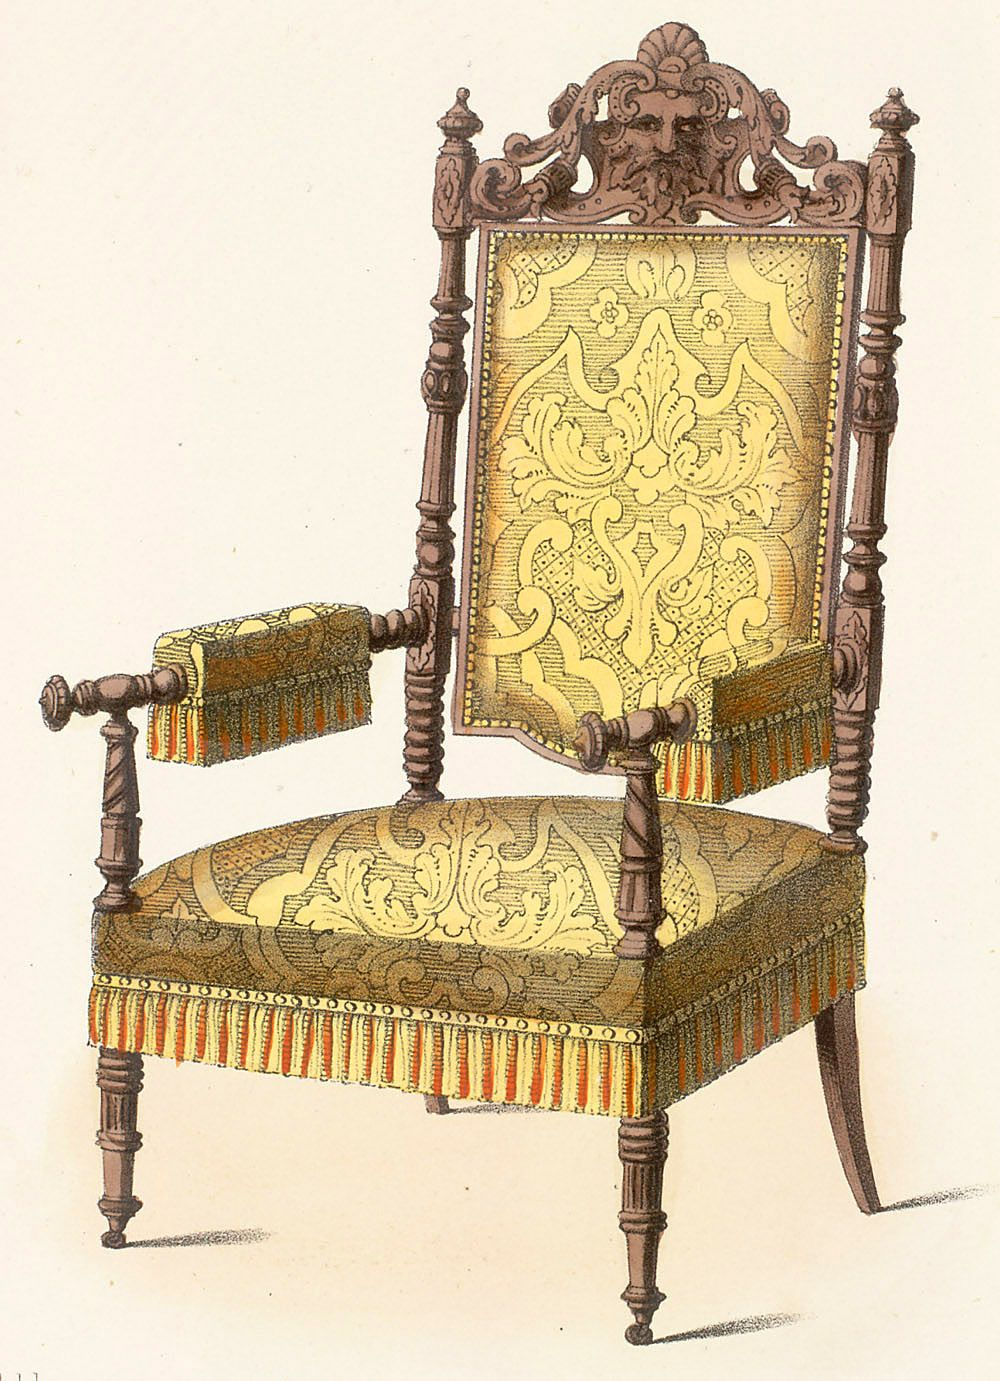 Superbe Renaissance Revival Arm Chair With Turned Legs And The Use Of Manchettes.  Renaissance Motifs Are Applied To The Modern Furniture Forms.